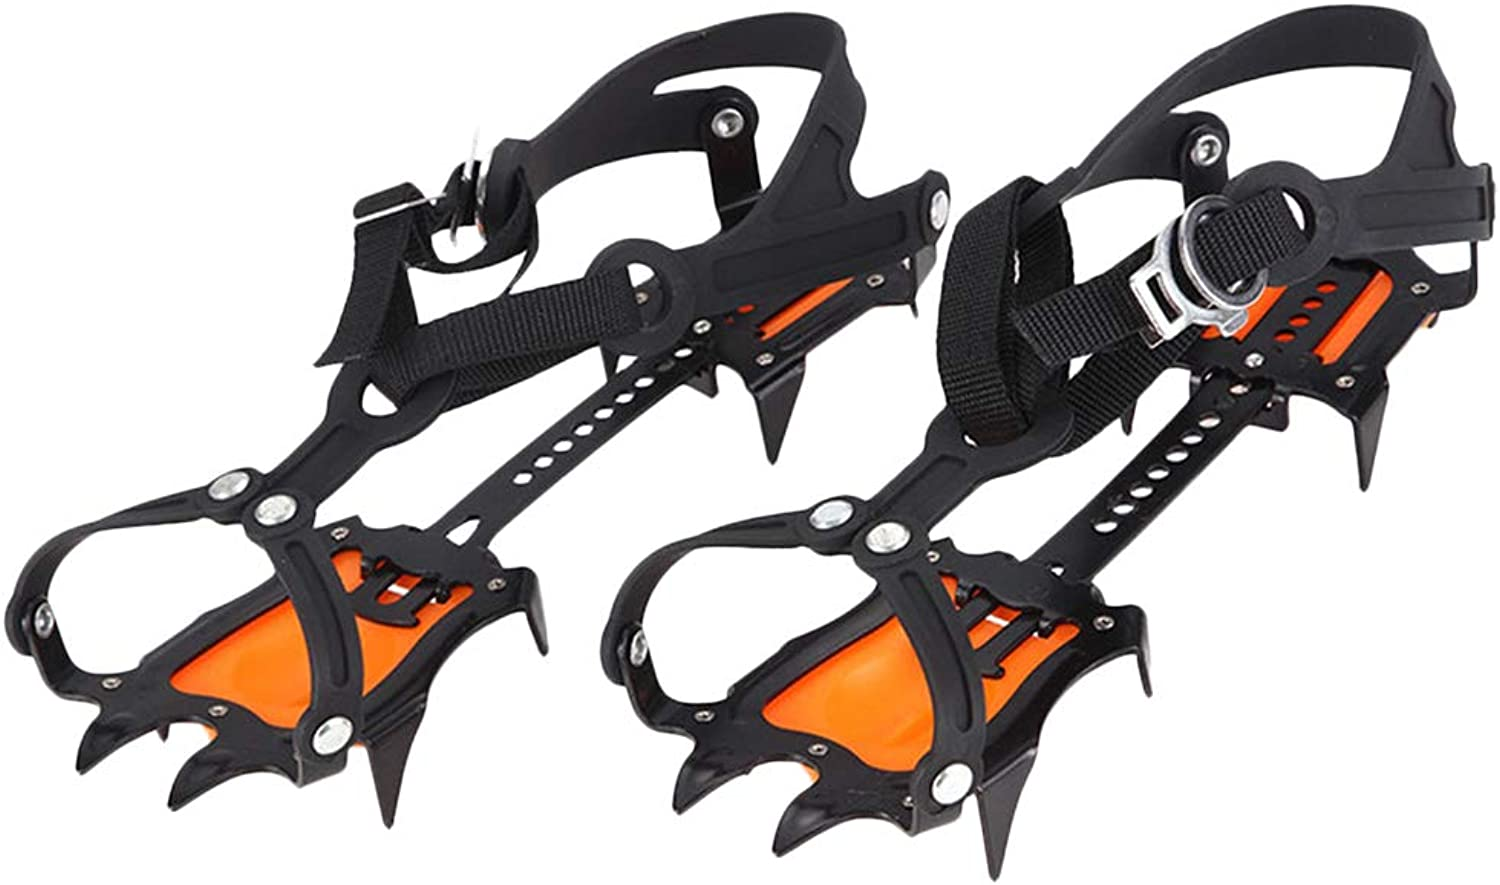 Fityle Nonskid Teeth Claws Crampons Spikes Traction Cleats Ice Snow Grips for Climbing Hiking Walking